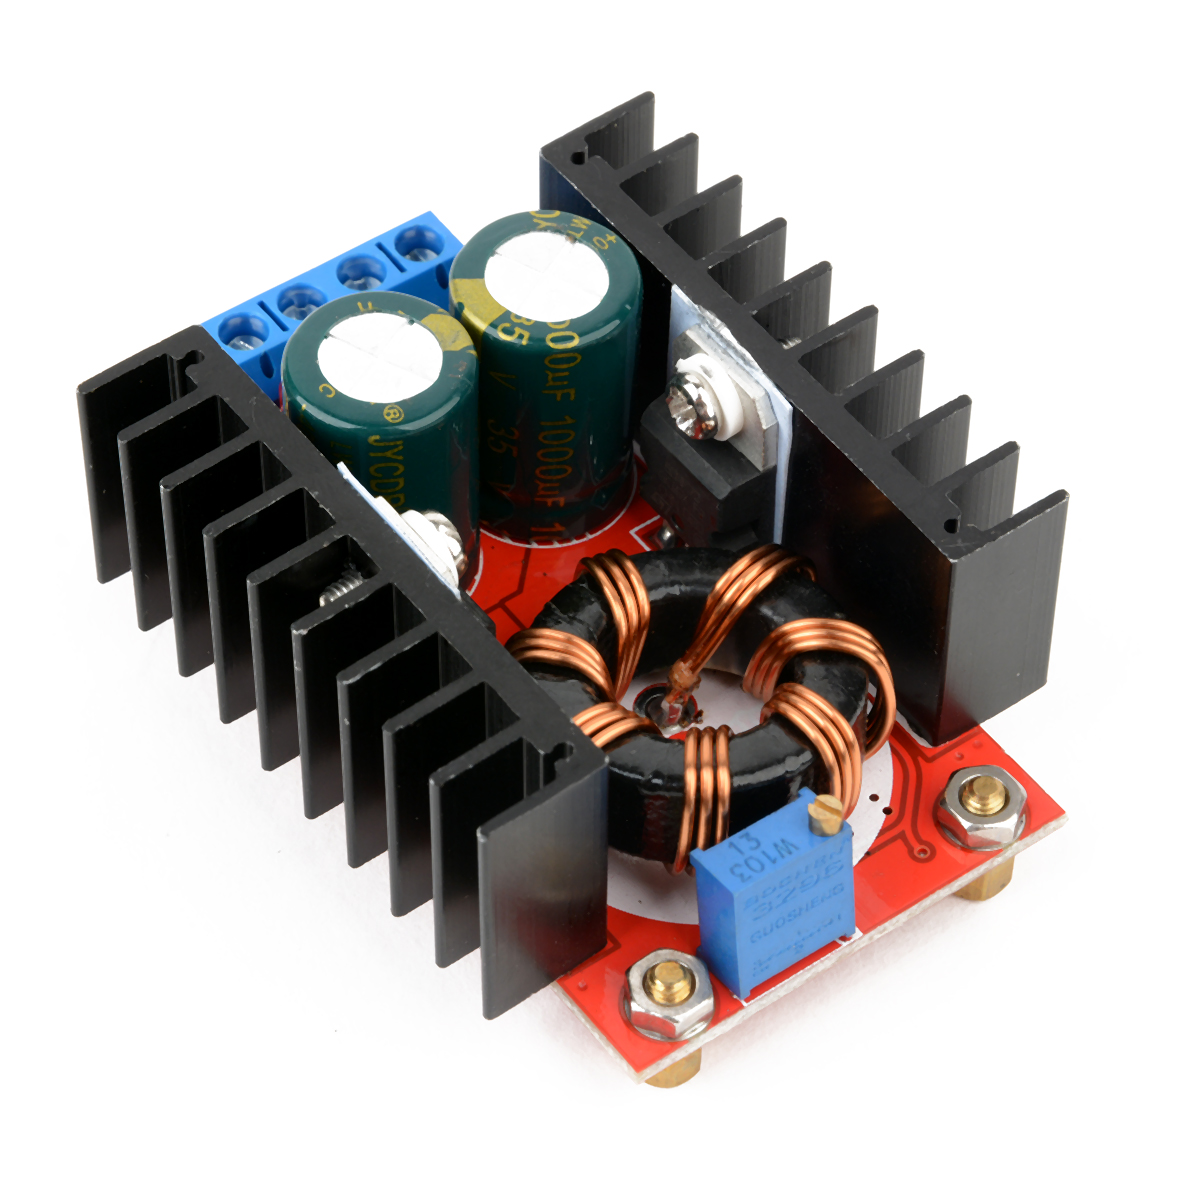 DC-DC Boost Converter Mayitr Step Up Charger Power Module Adjustable Static Power Supply Voltage Regulator 150W 6A